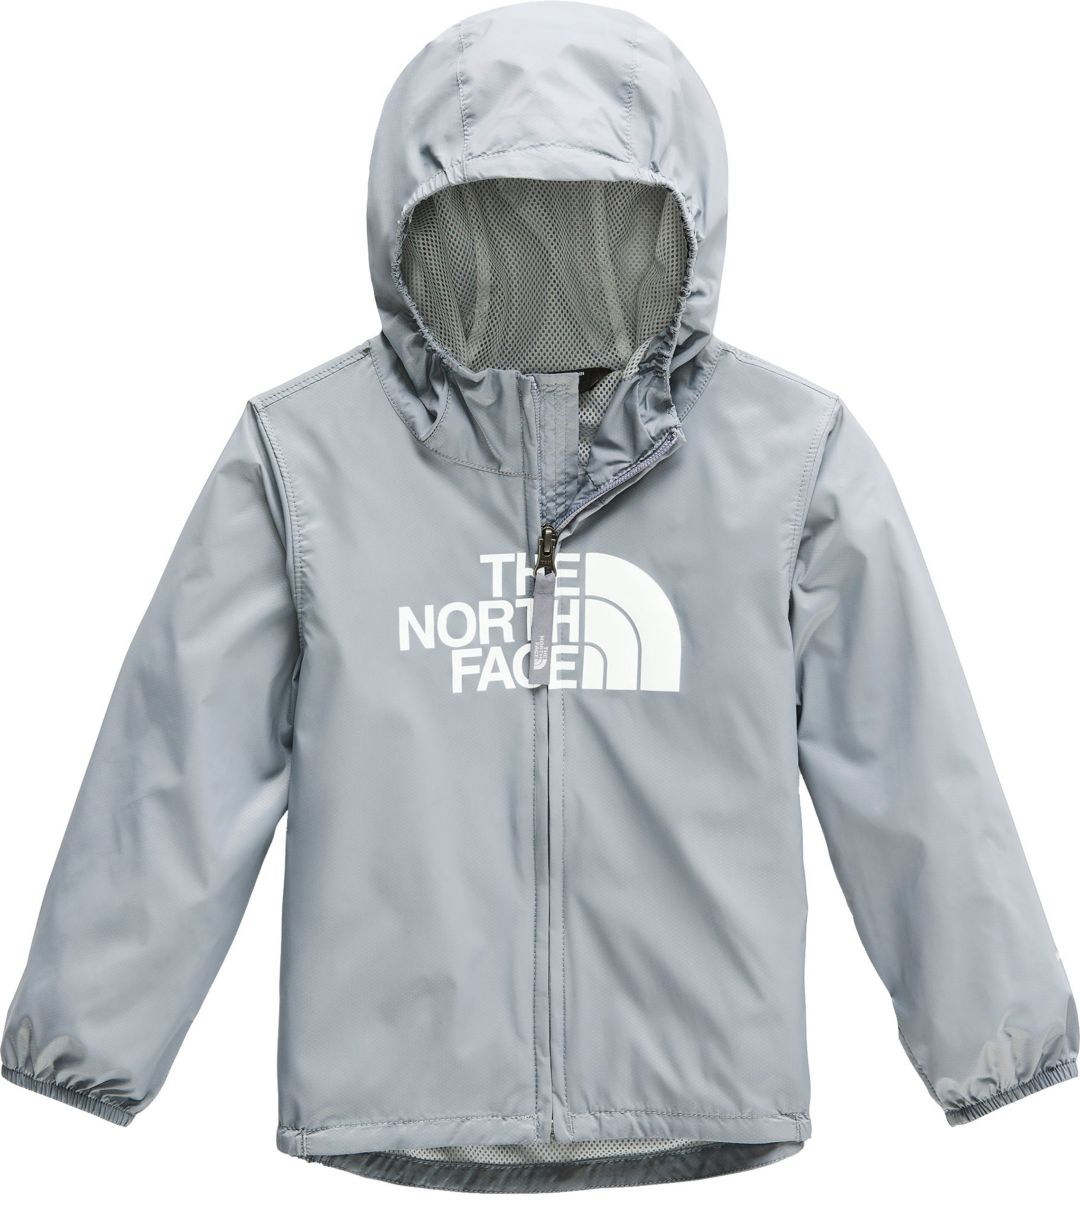 c0548406b The North Face Toddler Boys' Flurry Wind Jacket